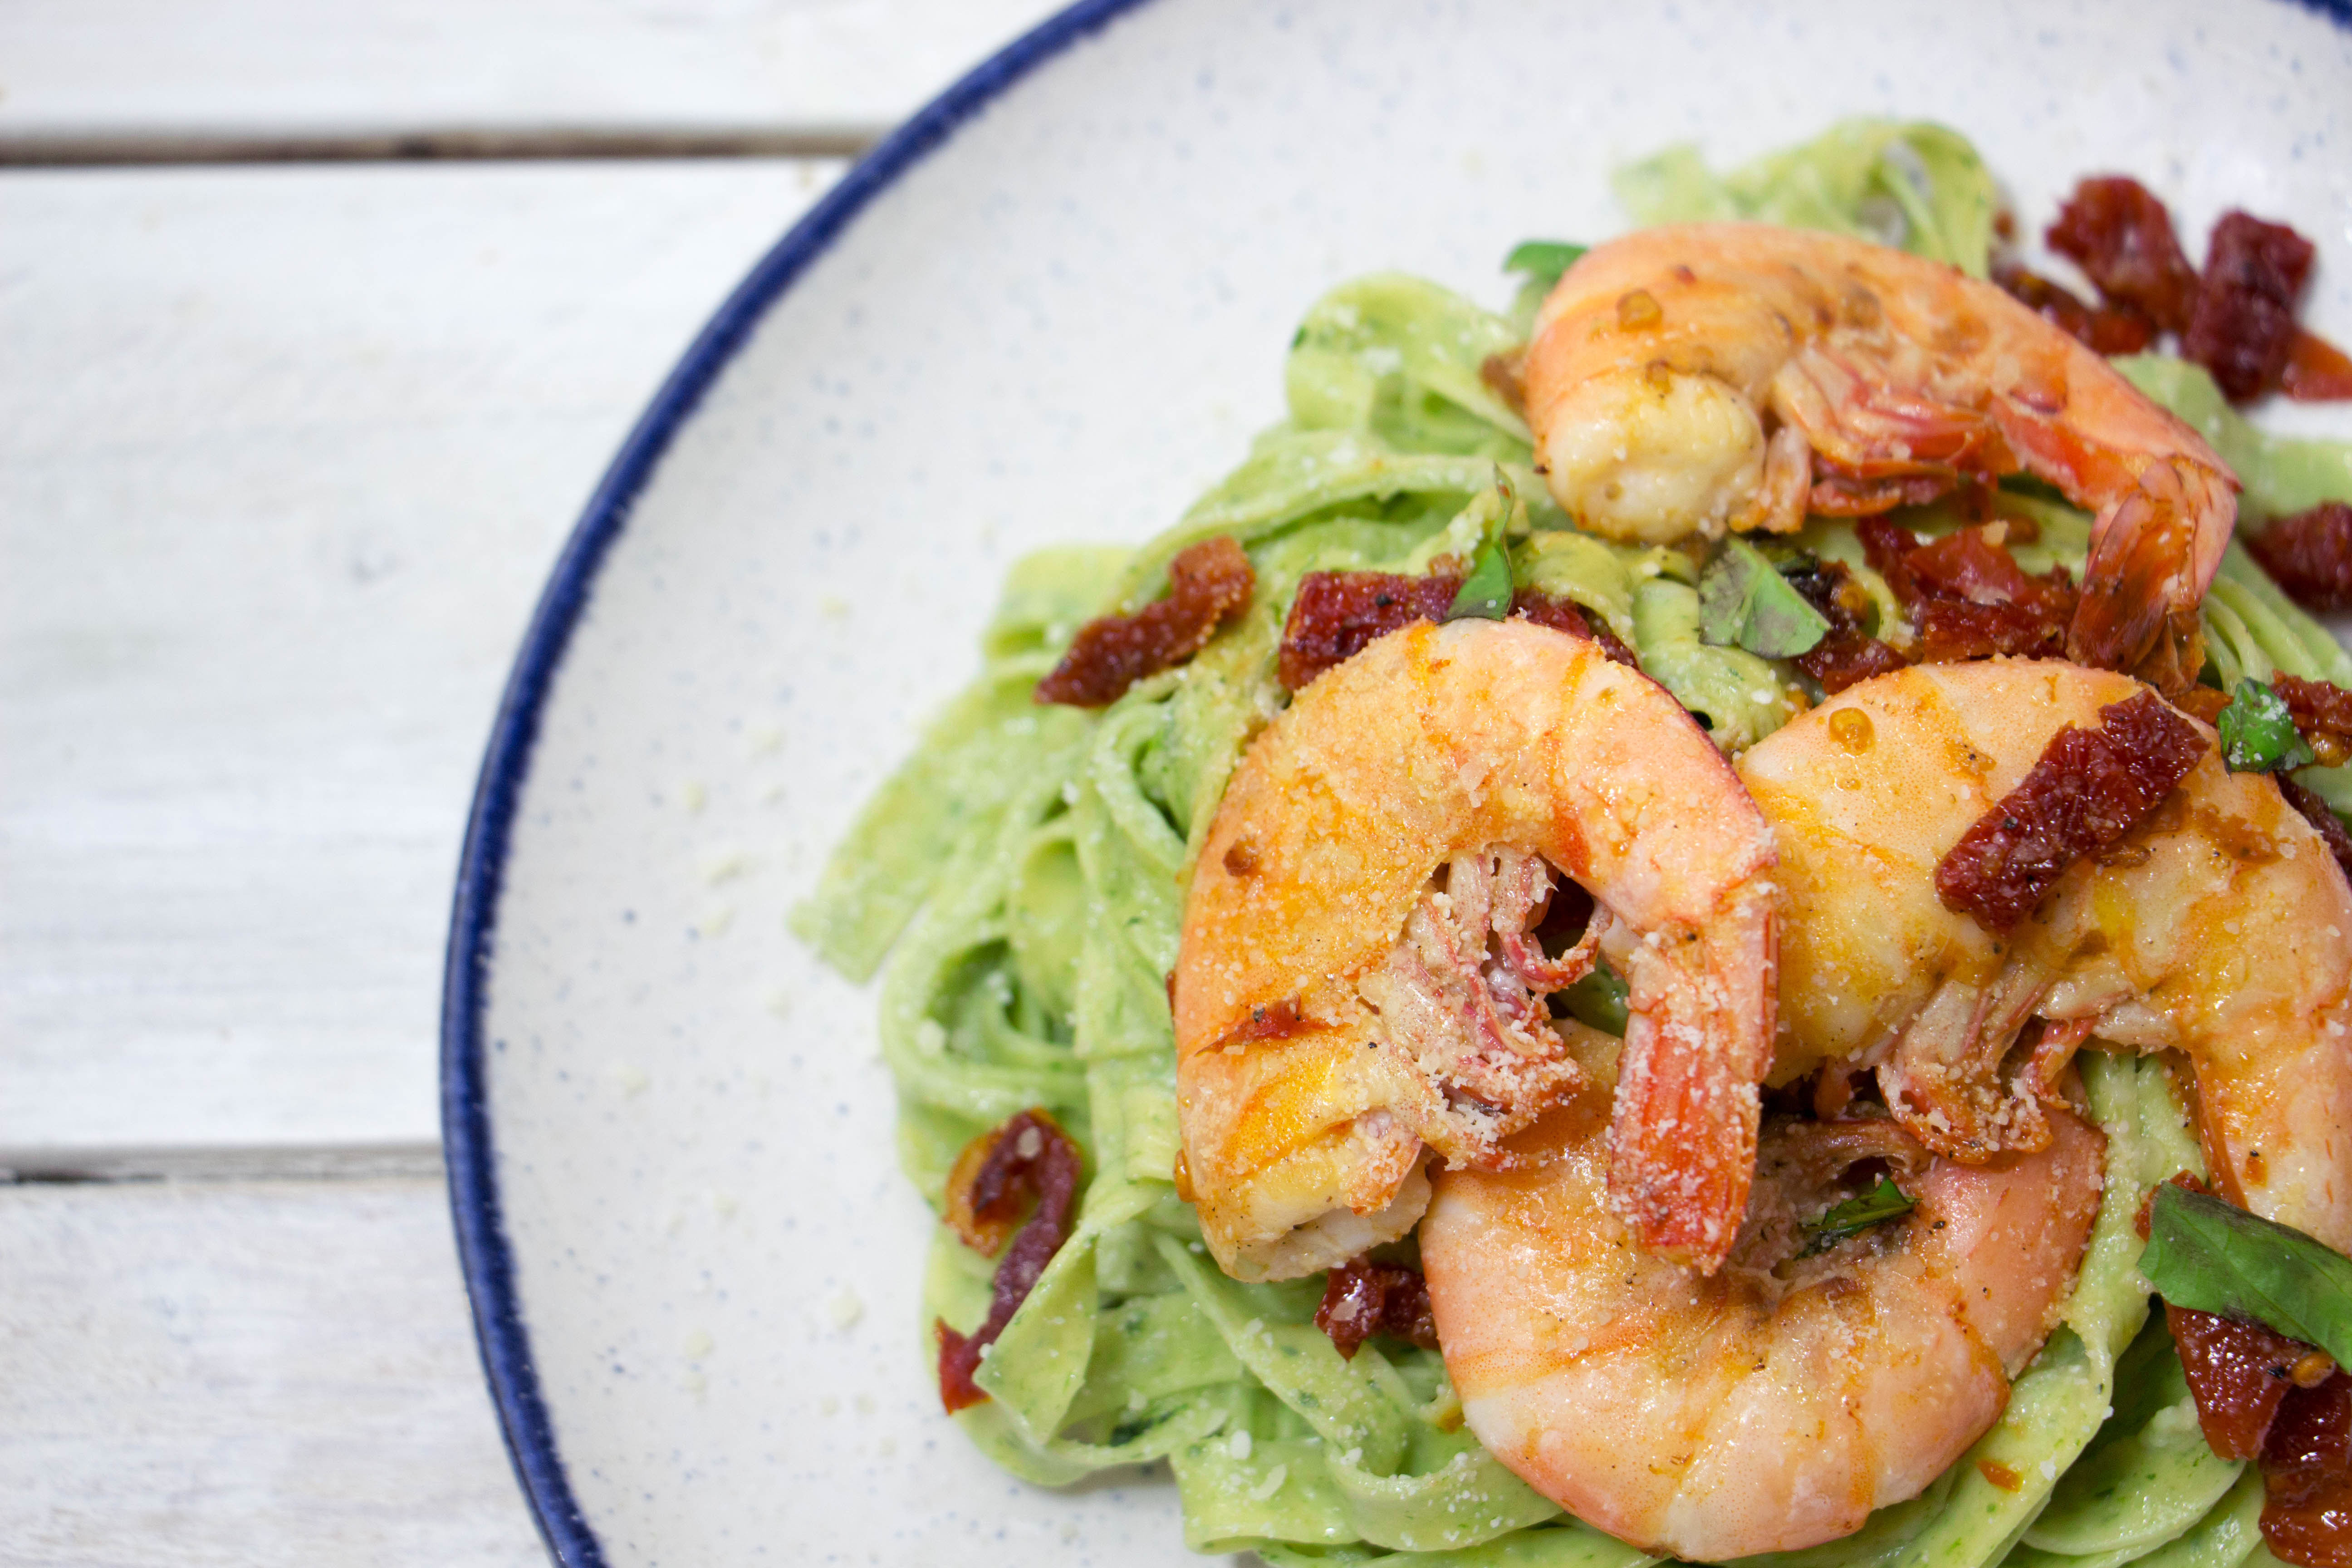 Spinach Tagliatelle with Shrimp